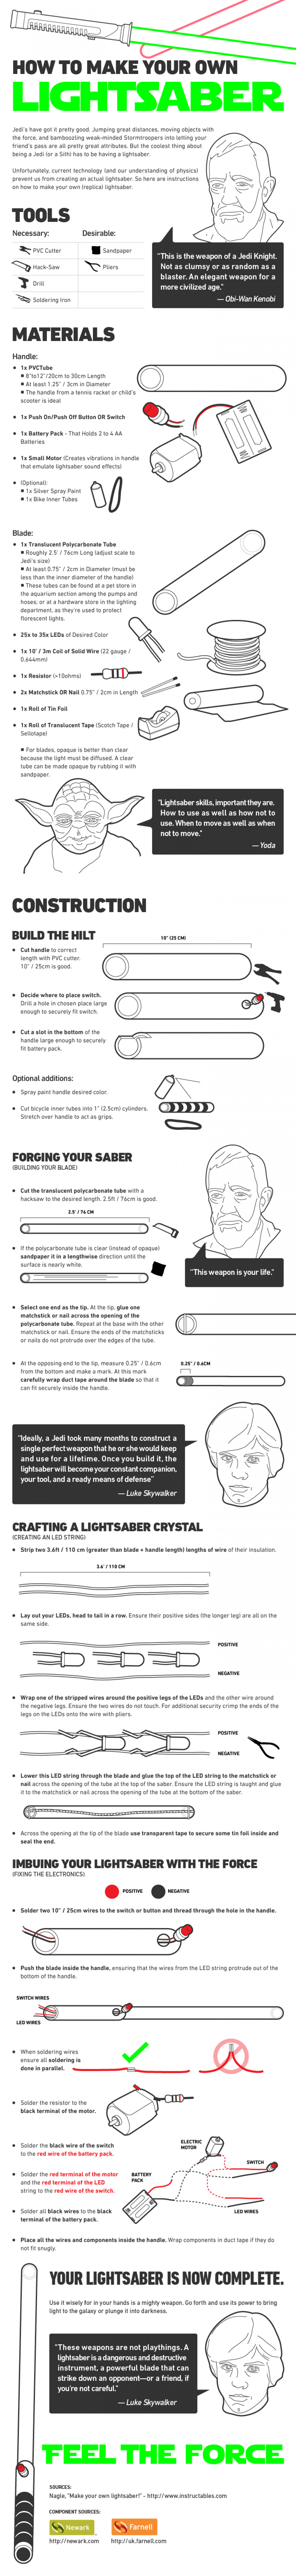 How To Make Your Own Lightsaber Infographic